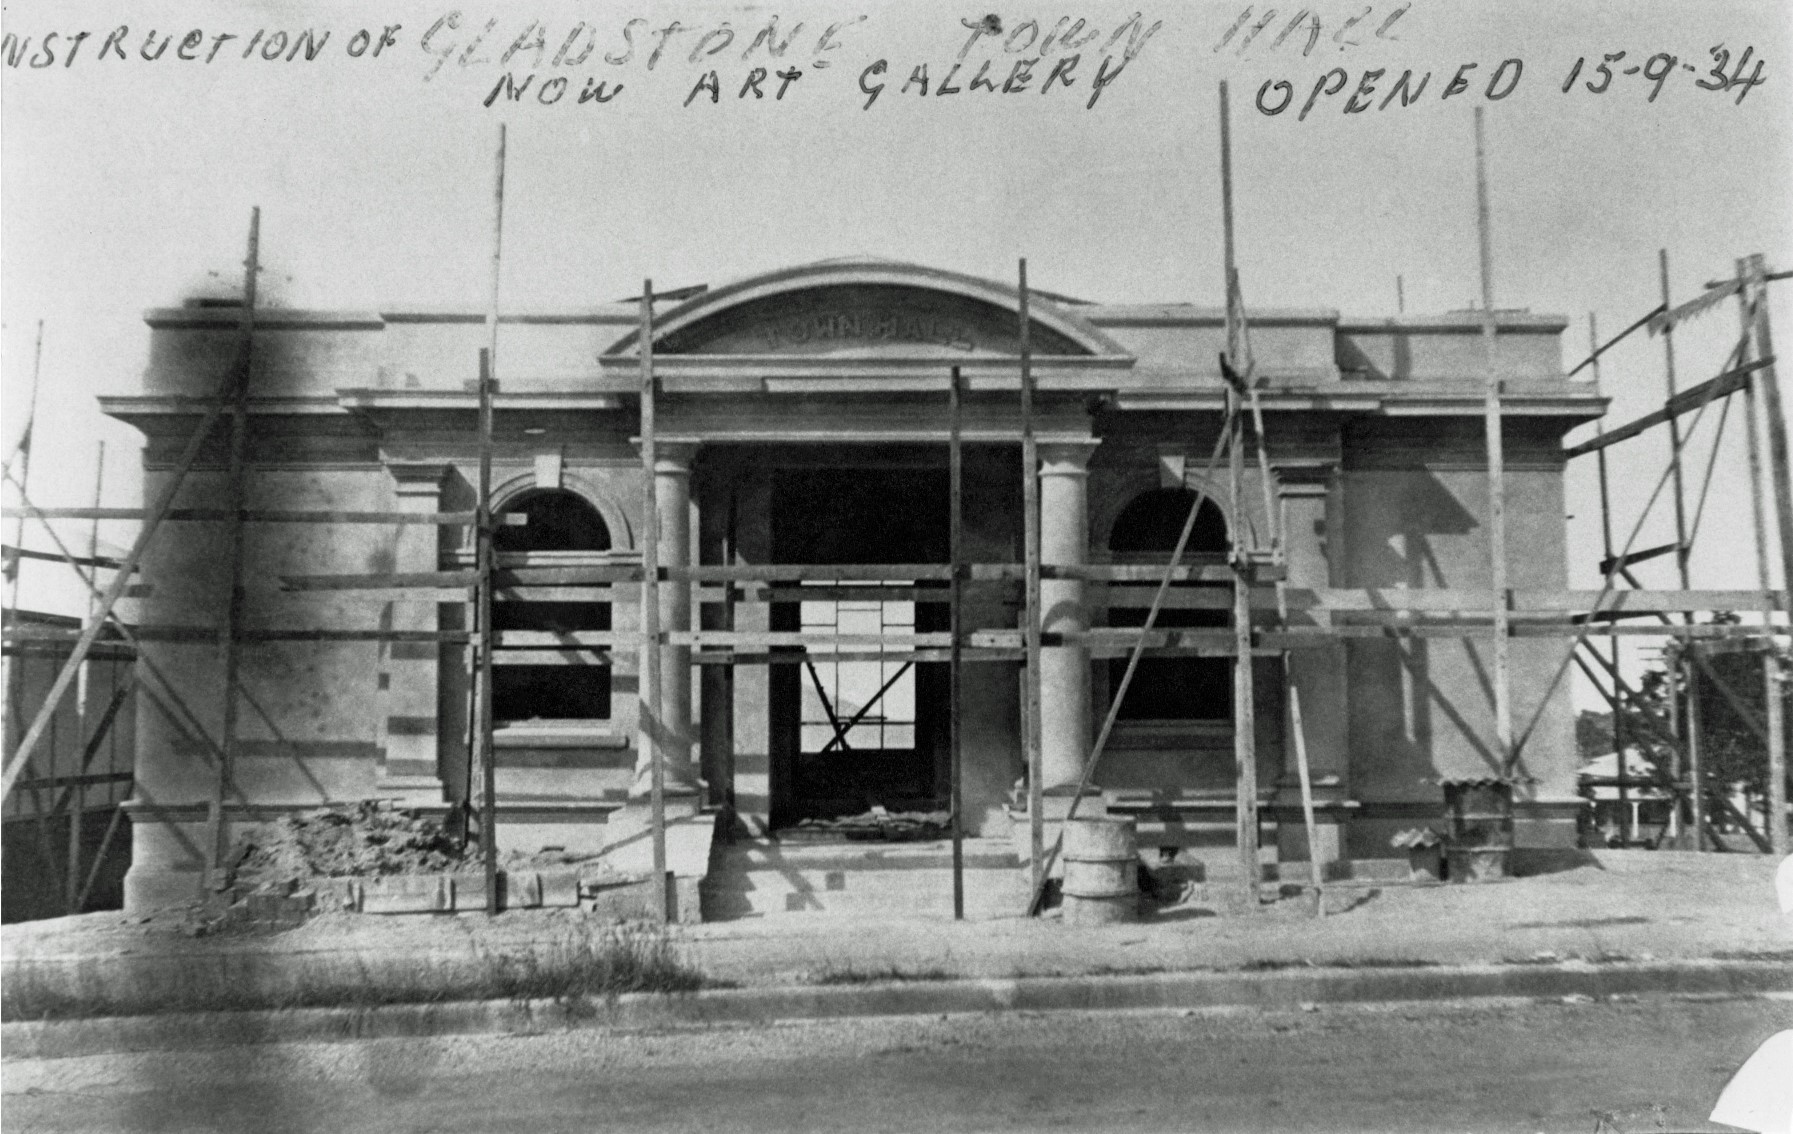 1934, Gladstone Town Hall under construction. (C) Gladstone Regional Art Gallery & Museum collection